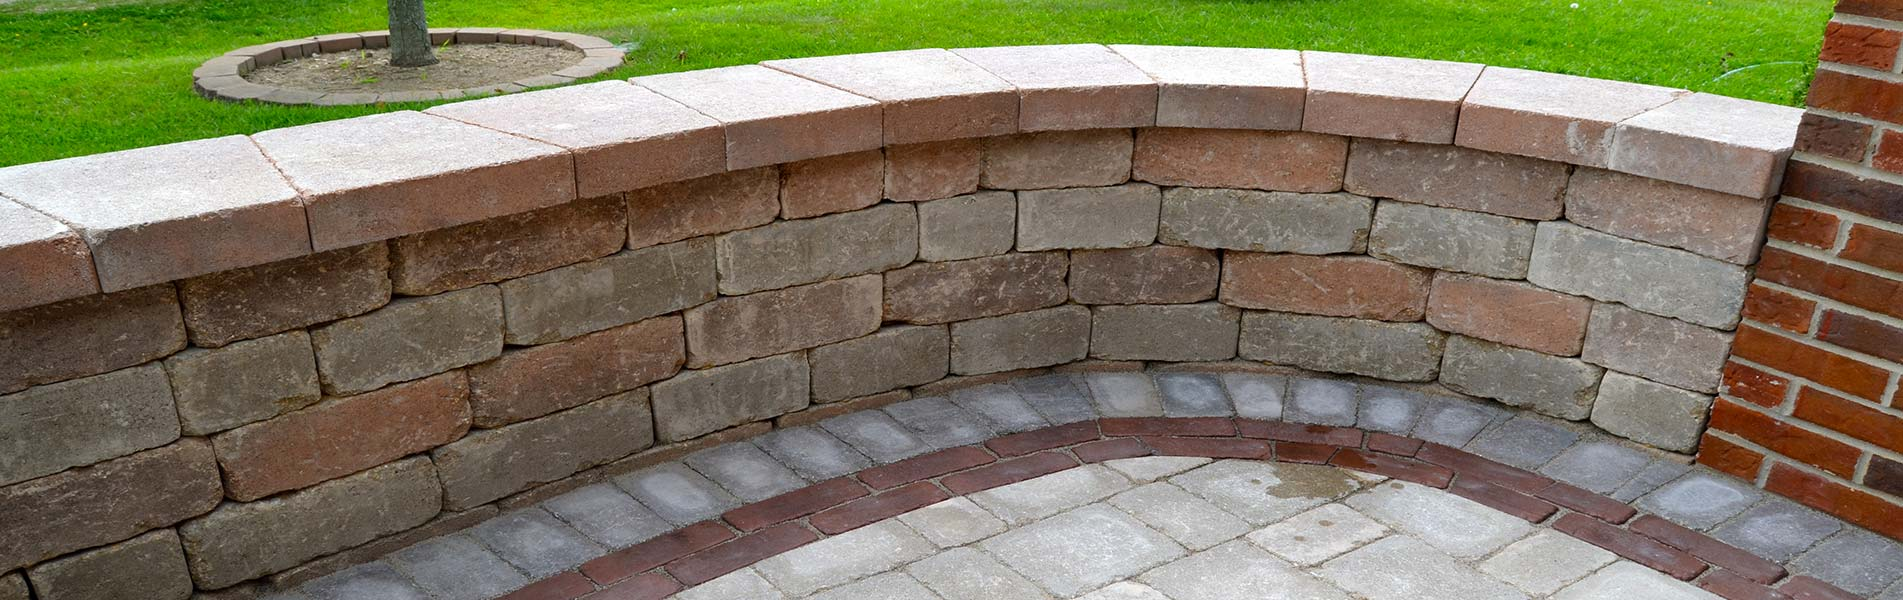 Sitting Wall Installation Services by B&C Pavers & Landscaping Inc.